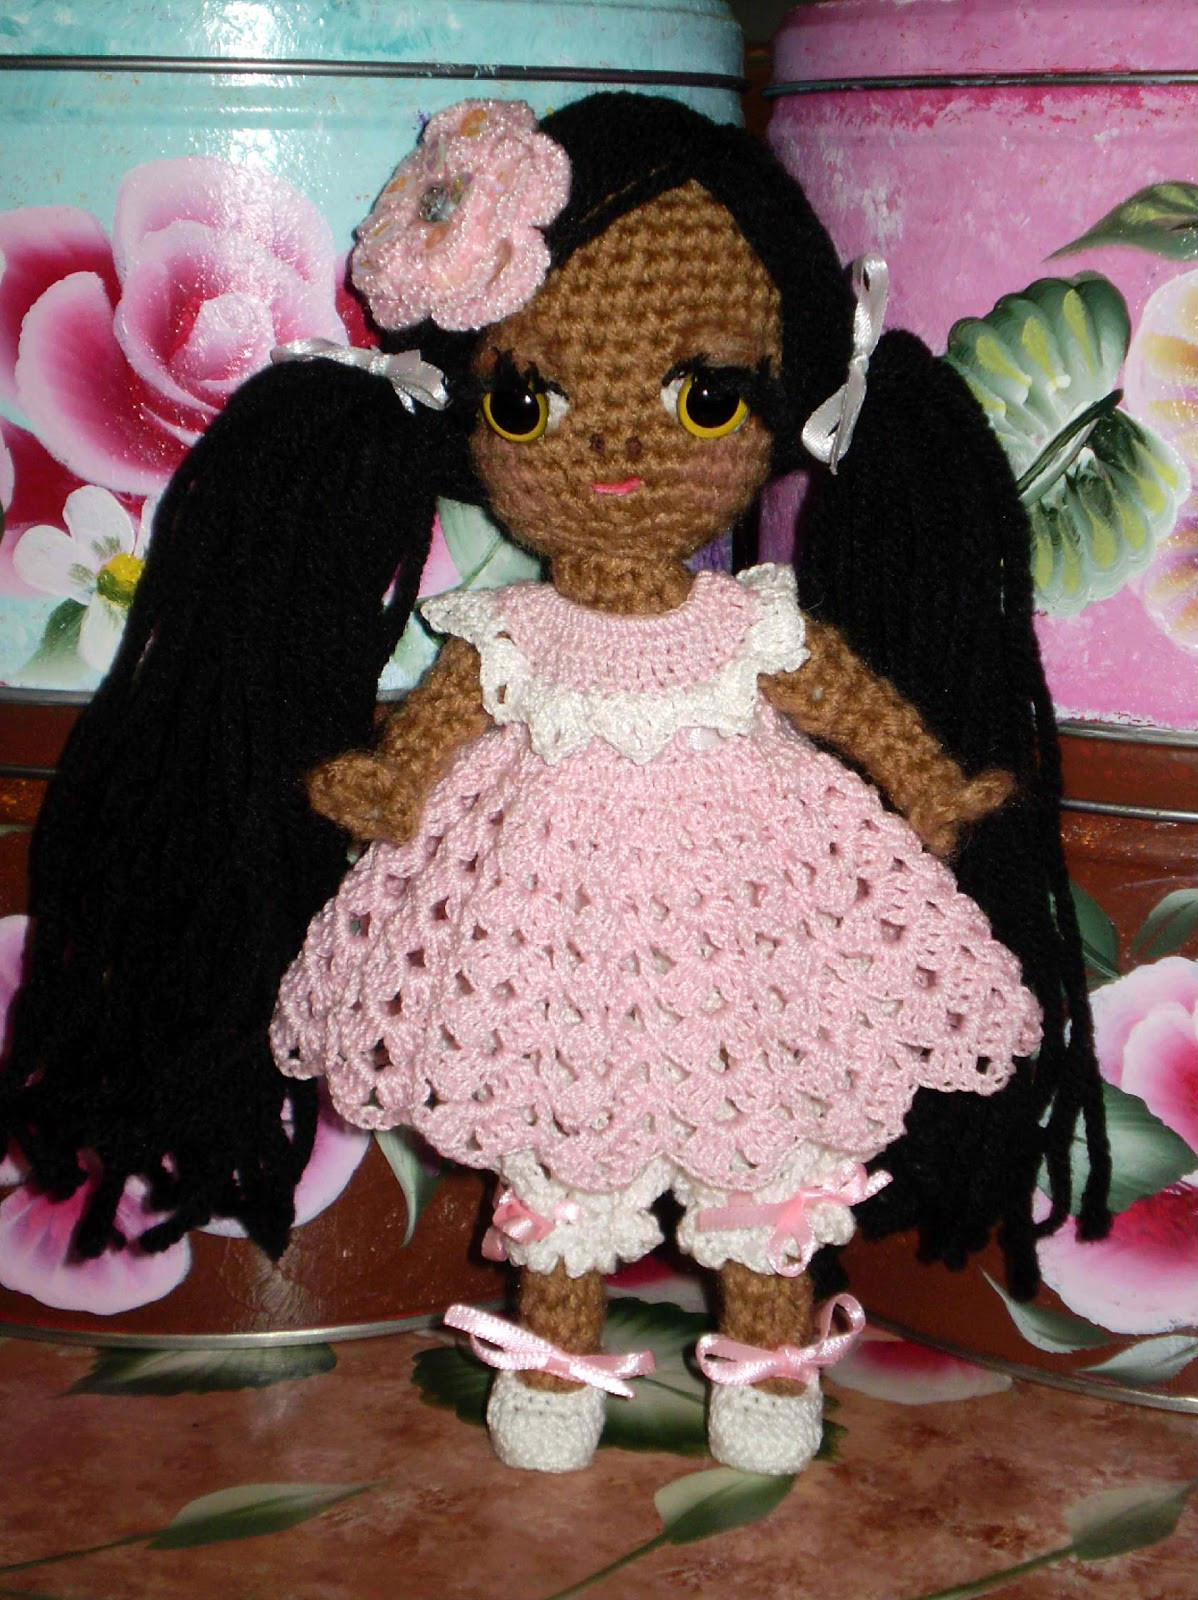 Crochet Doll Awesome Free Crochet Pattern for Doll Carrier Crochet and Of Crochet Doll Inspirational Snow White Doll Crochet Pattern